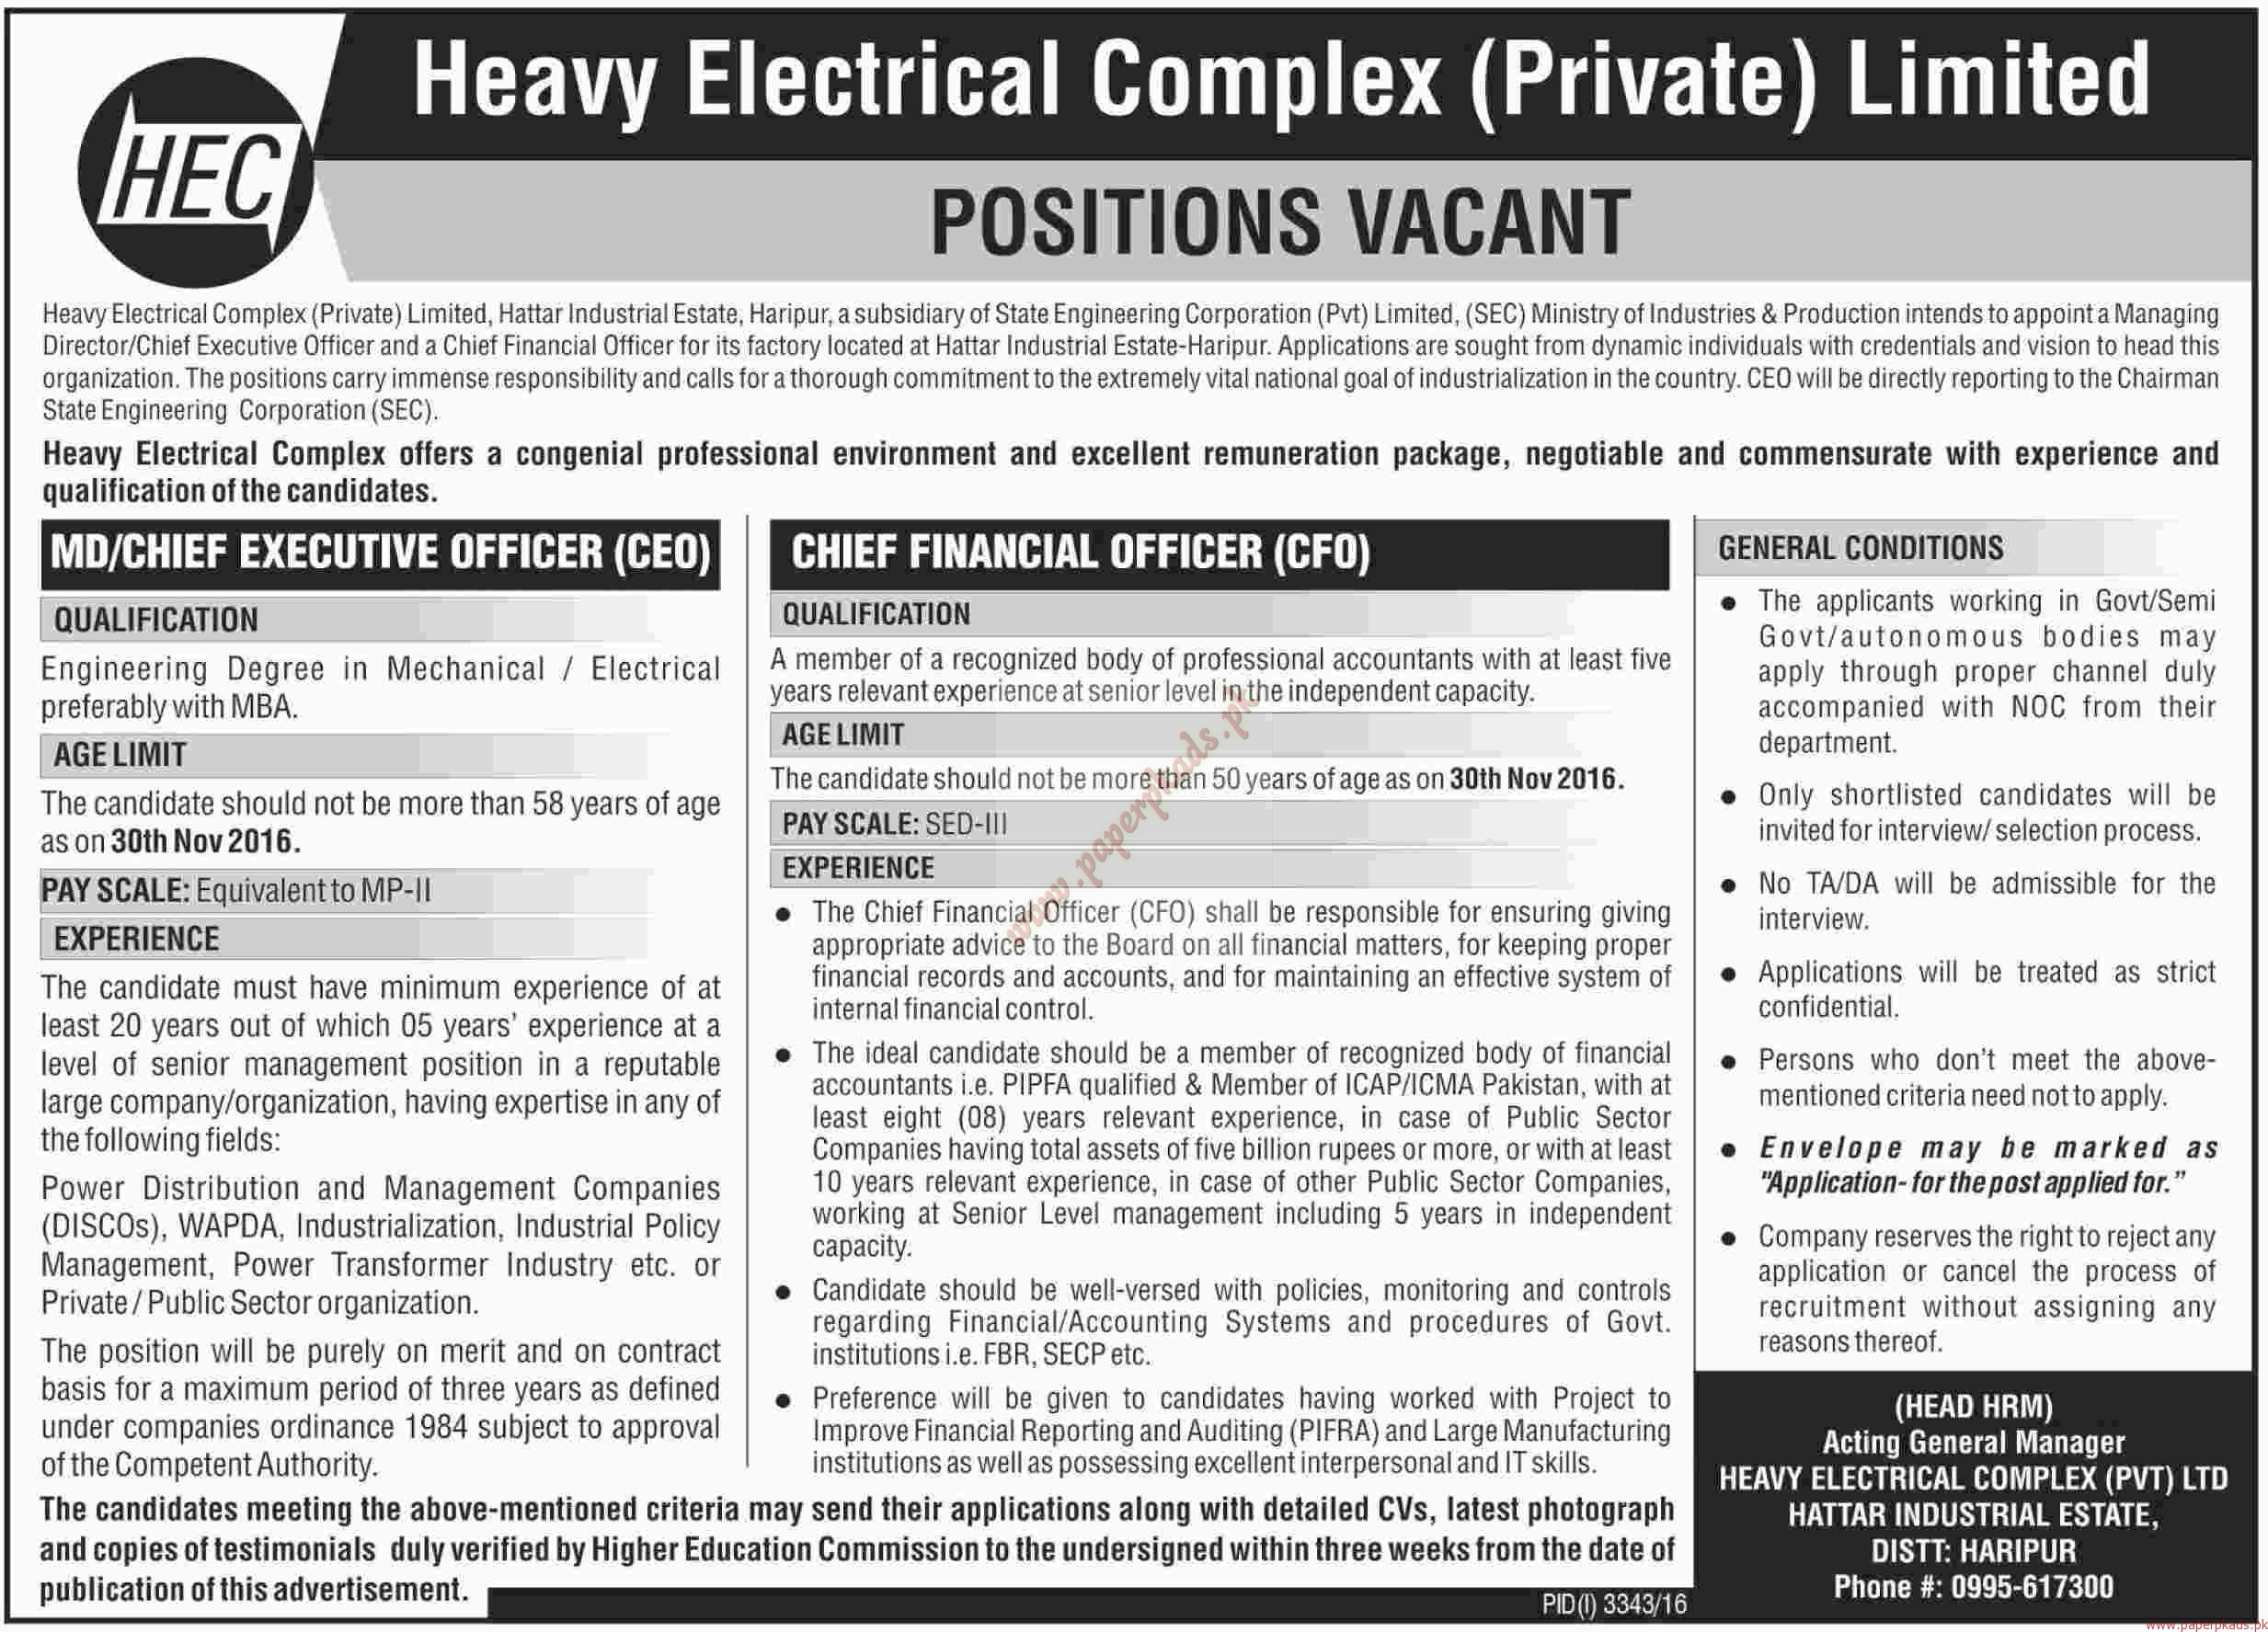 Heavy Electrical Complex Private Limited Jobs - Dawn Jobs ads 01 January 2017